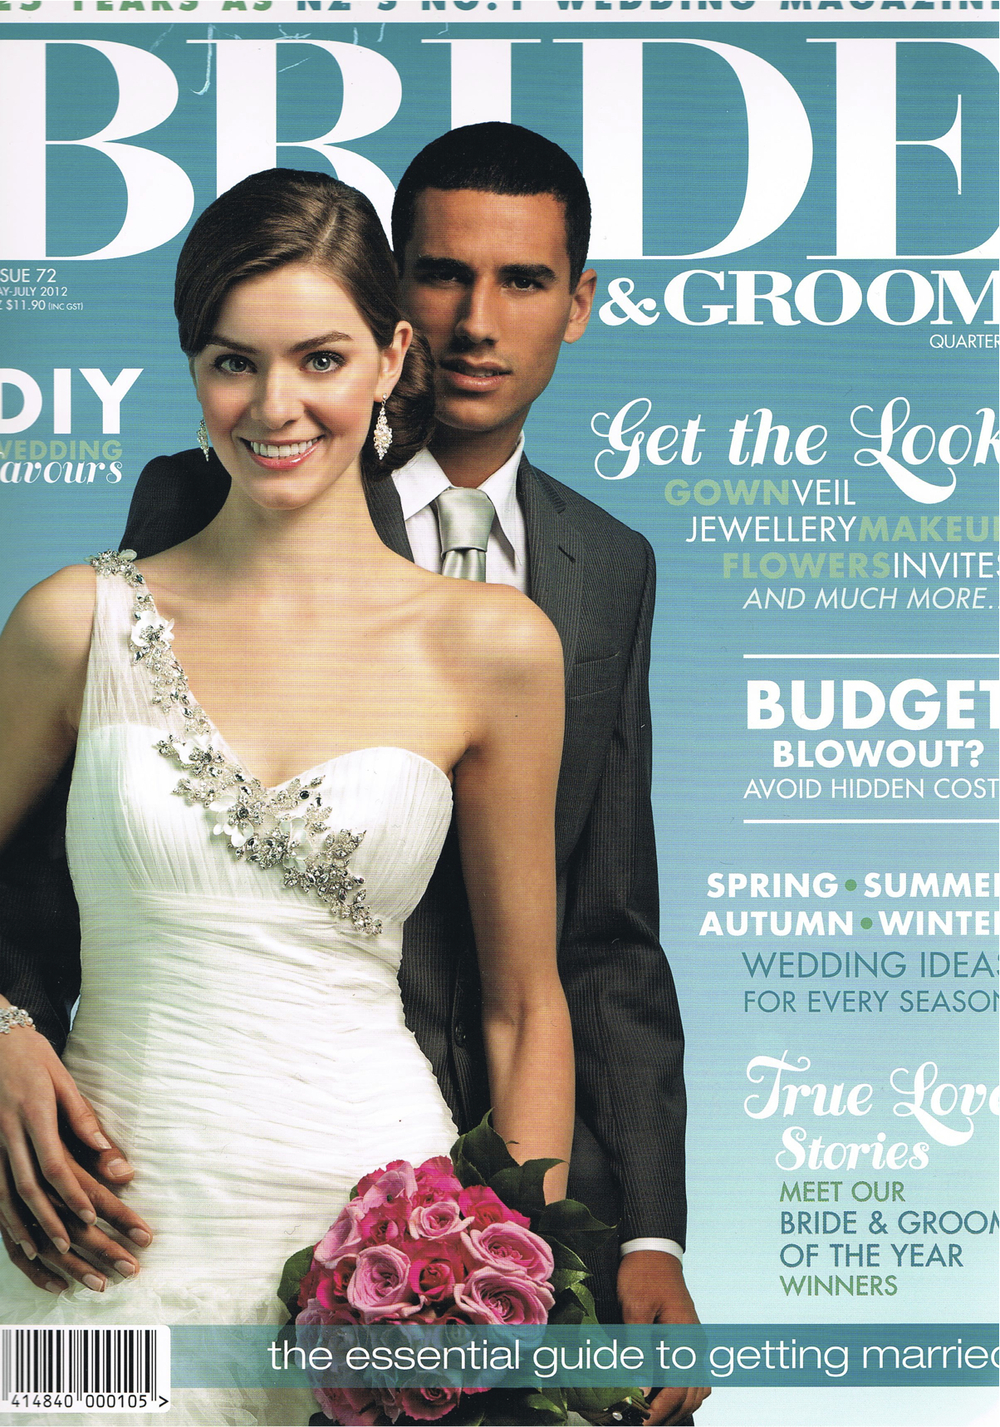 Bride and Groom cover